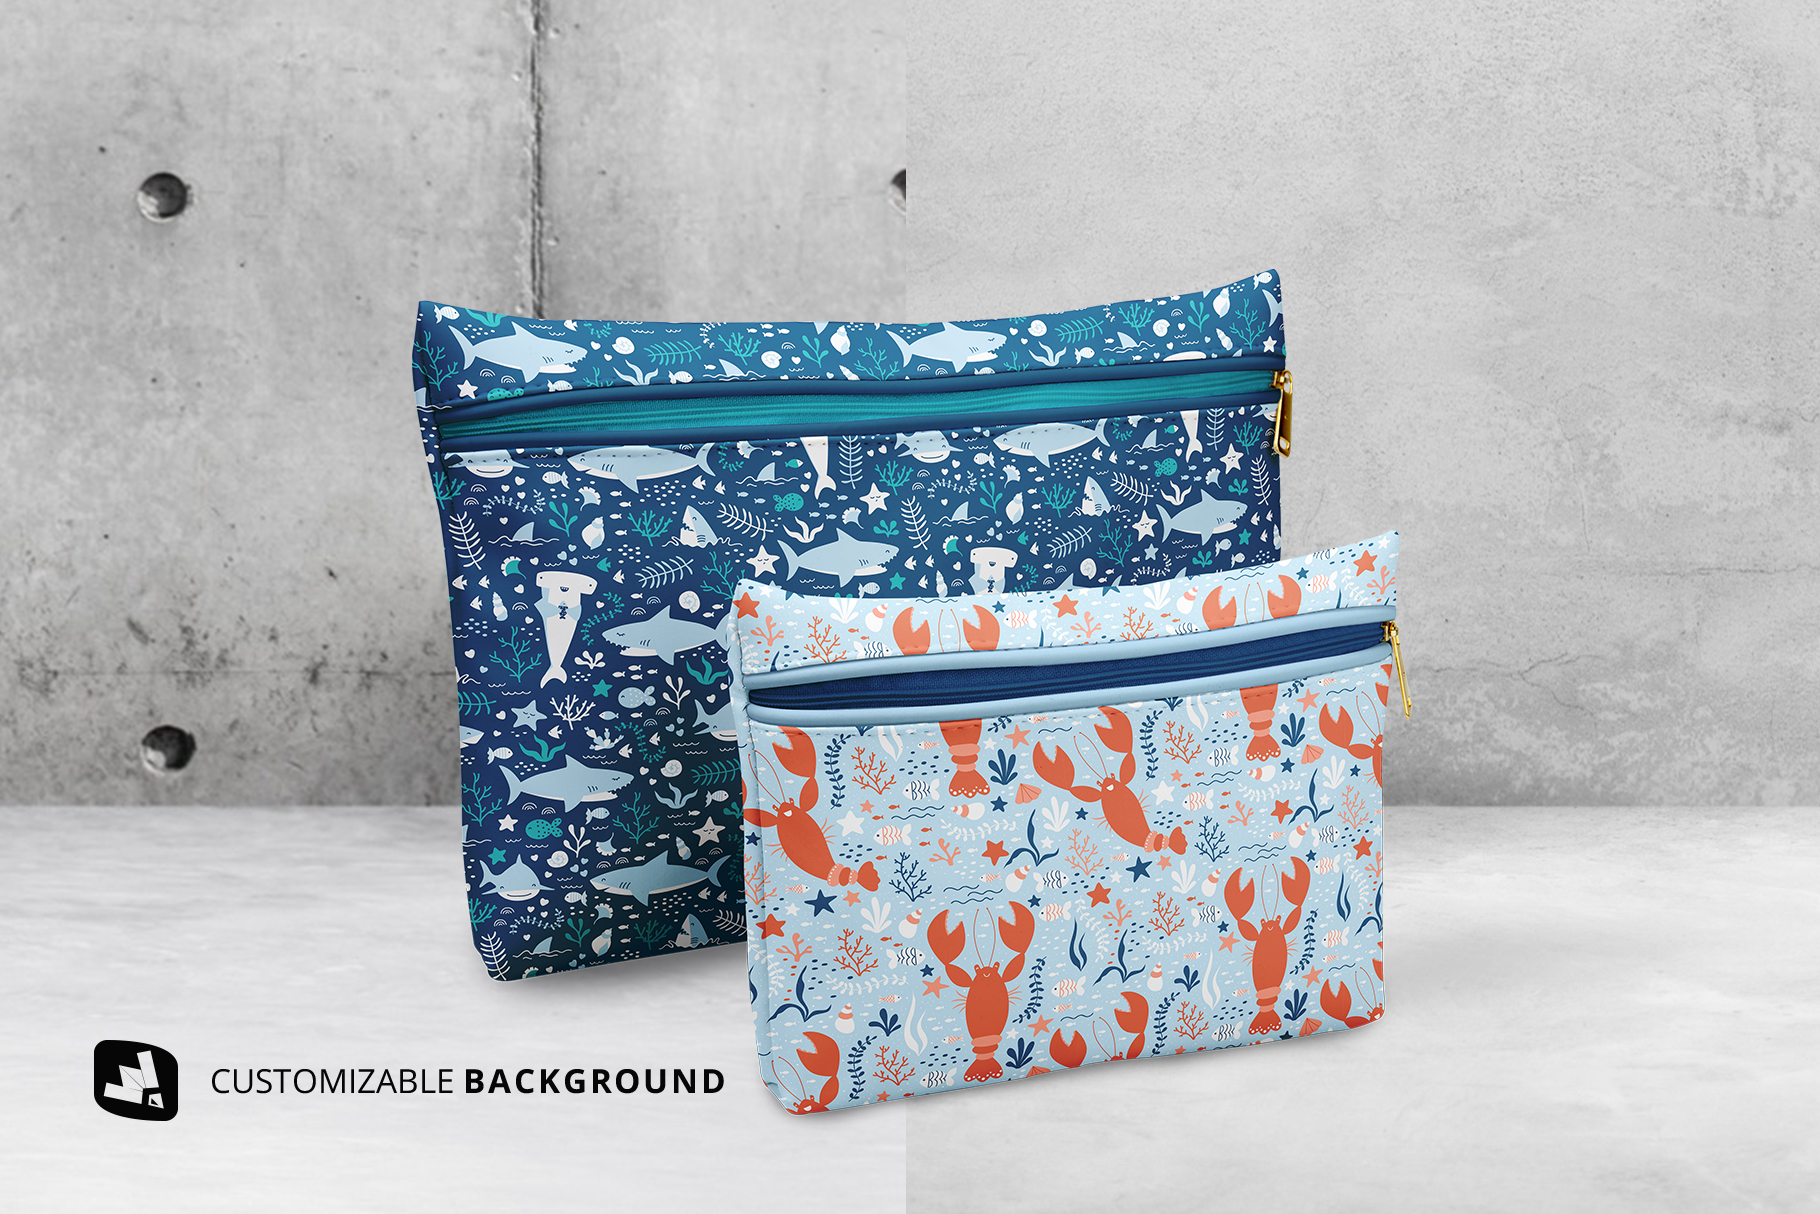 background options of the set of travel bathroom pouches mockup